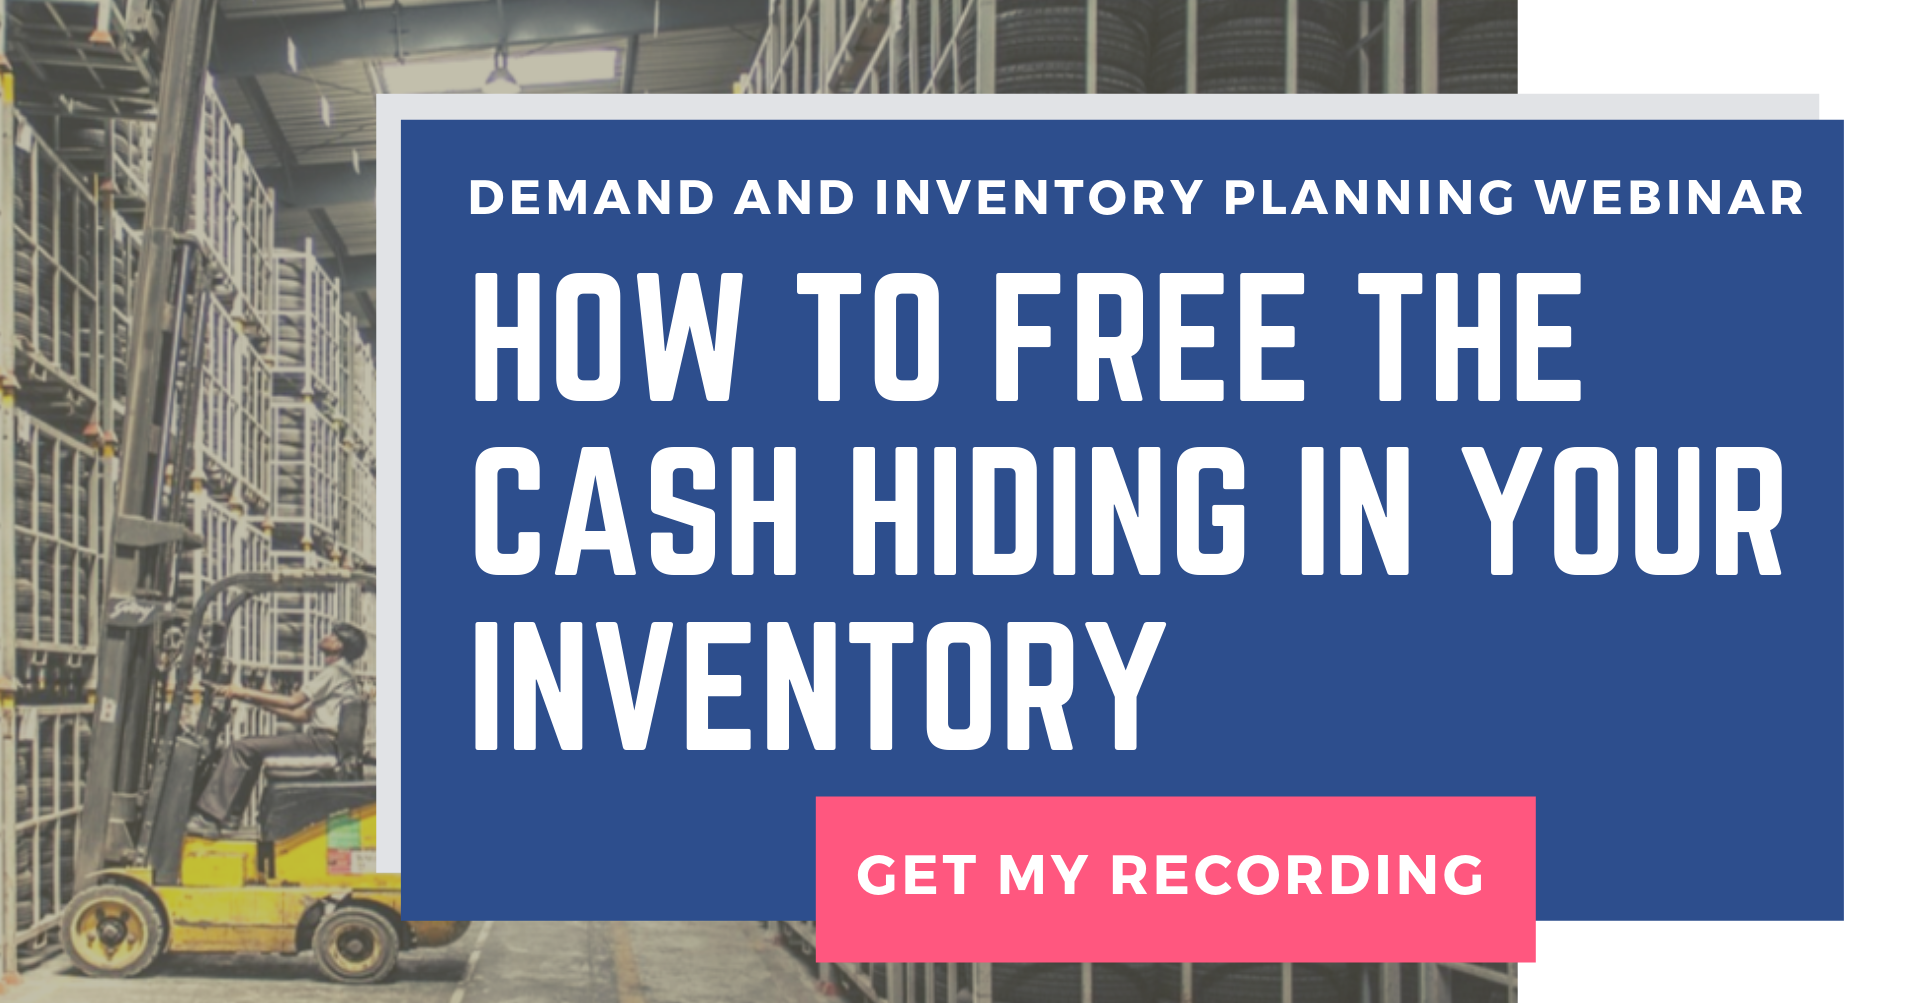 How to Free the Cash hiding in your inventory Graphic with CTA (5).png